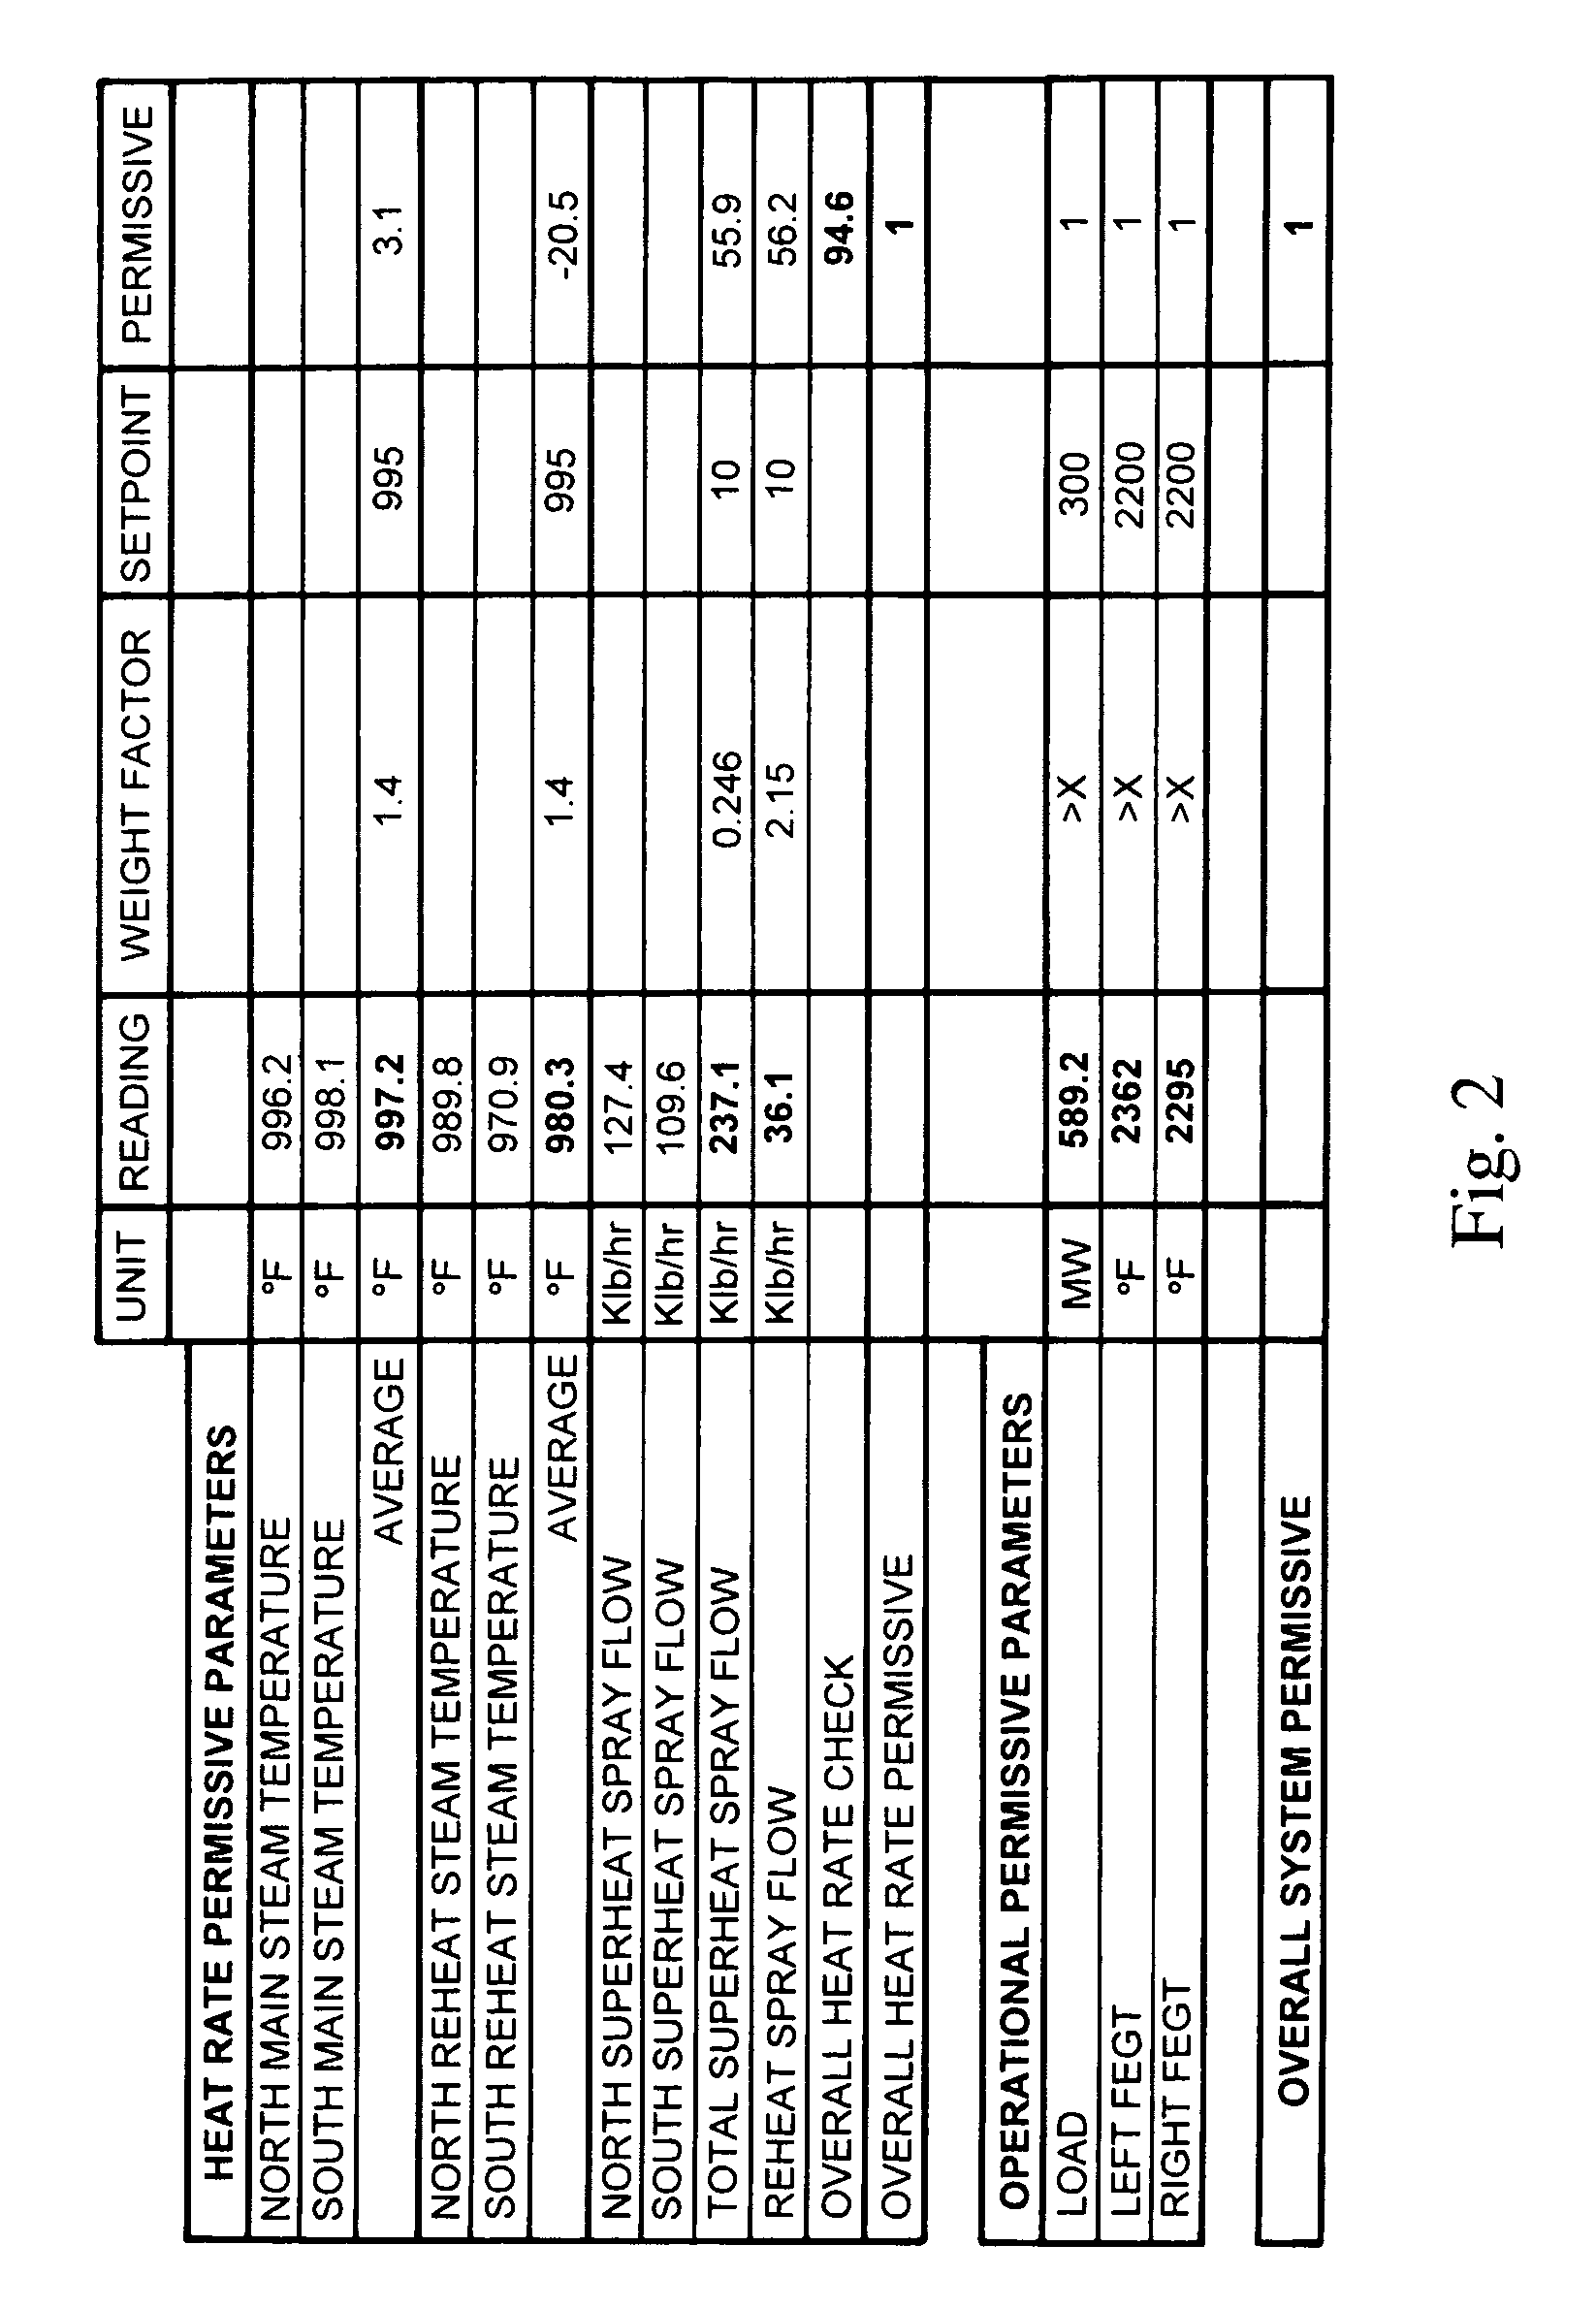 Patent US Sootblowing control based on boiler thermal